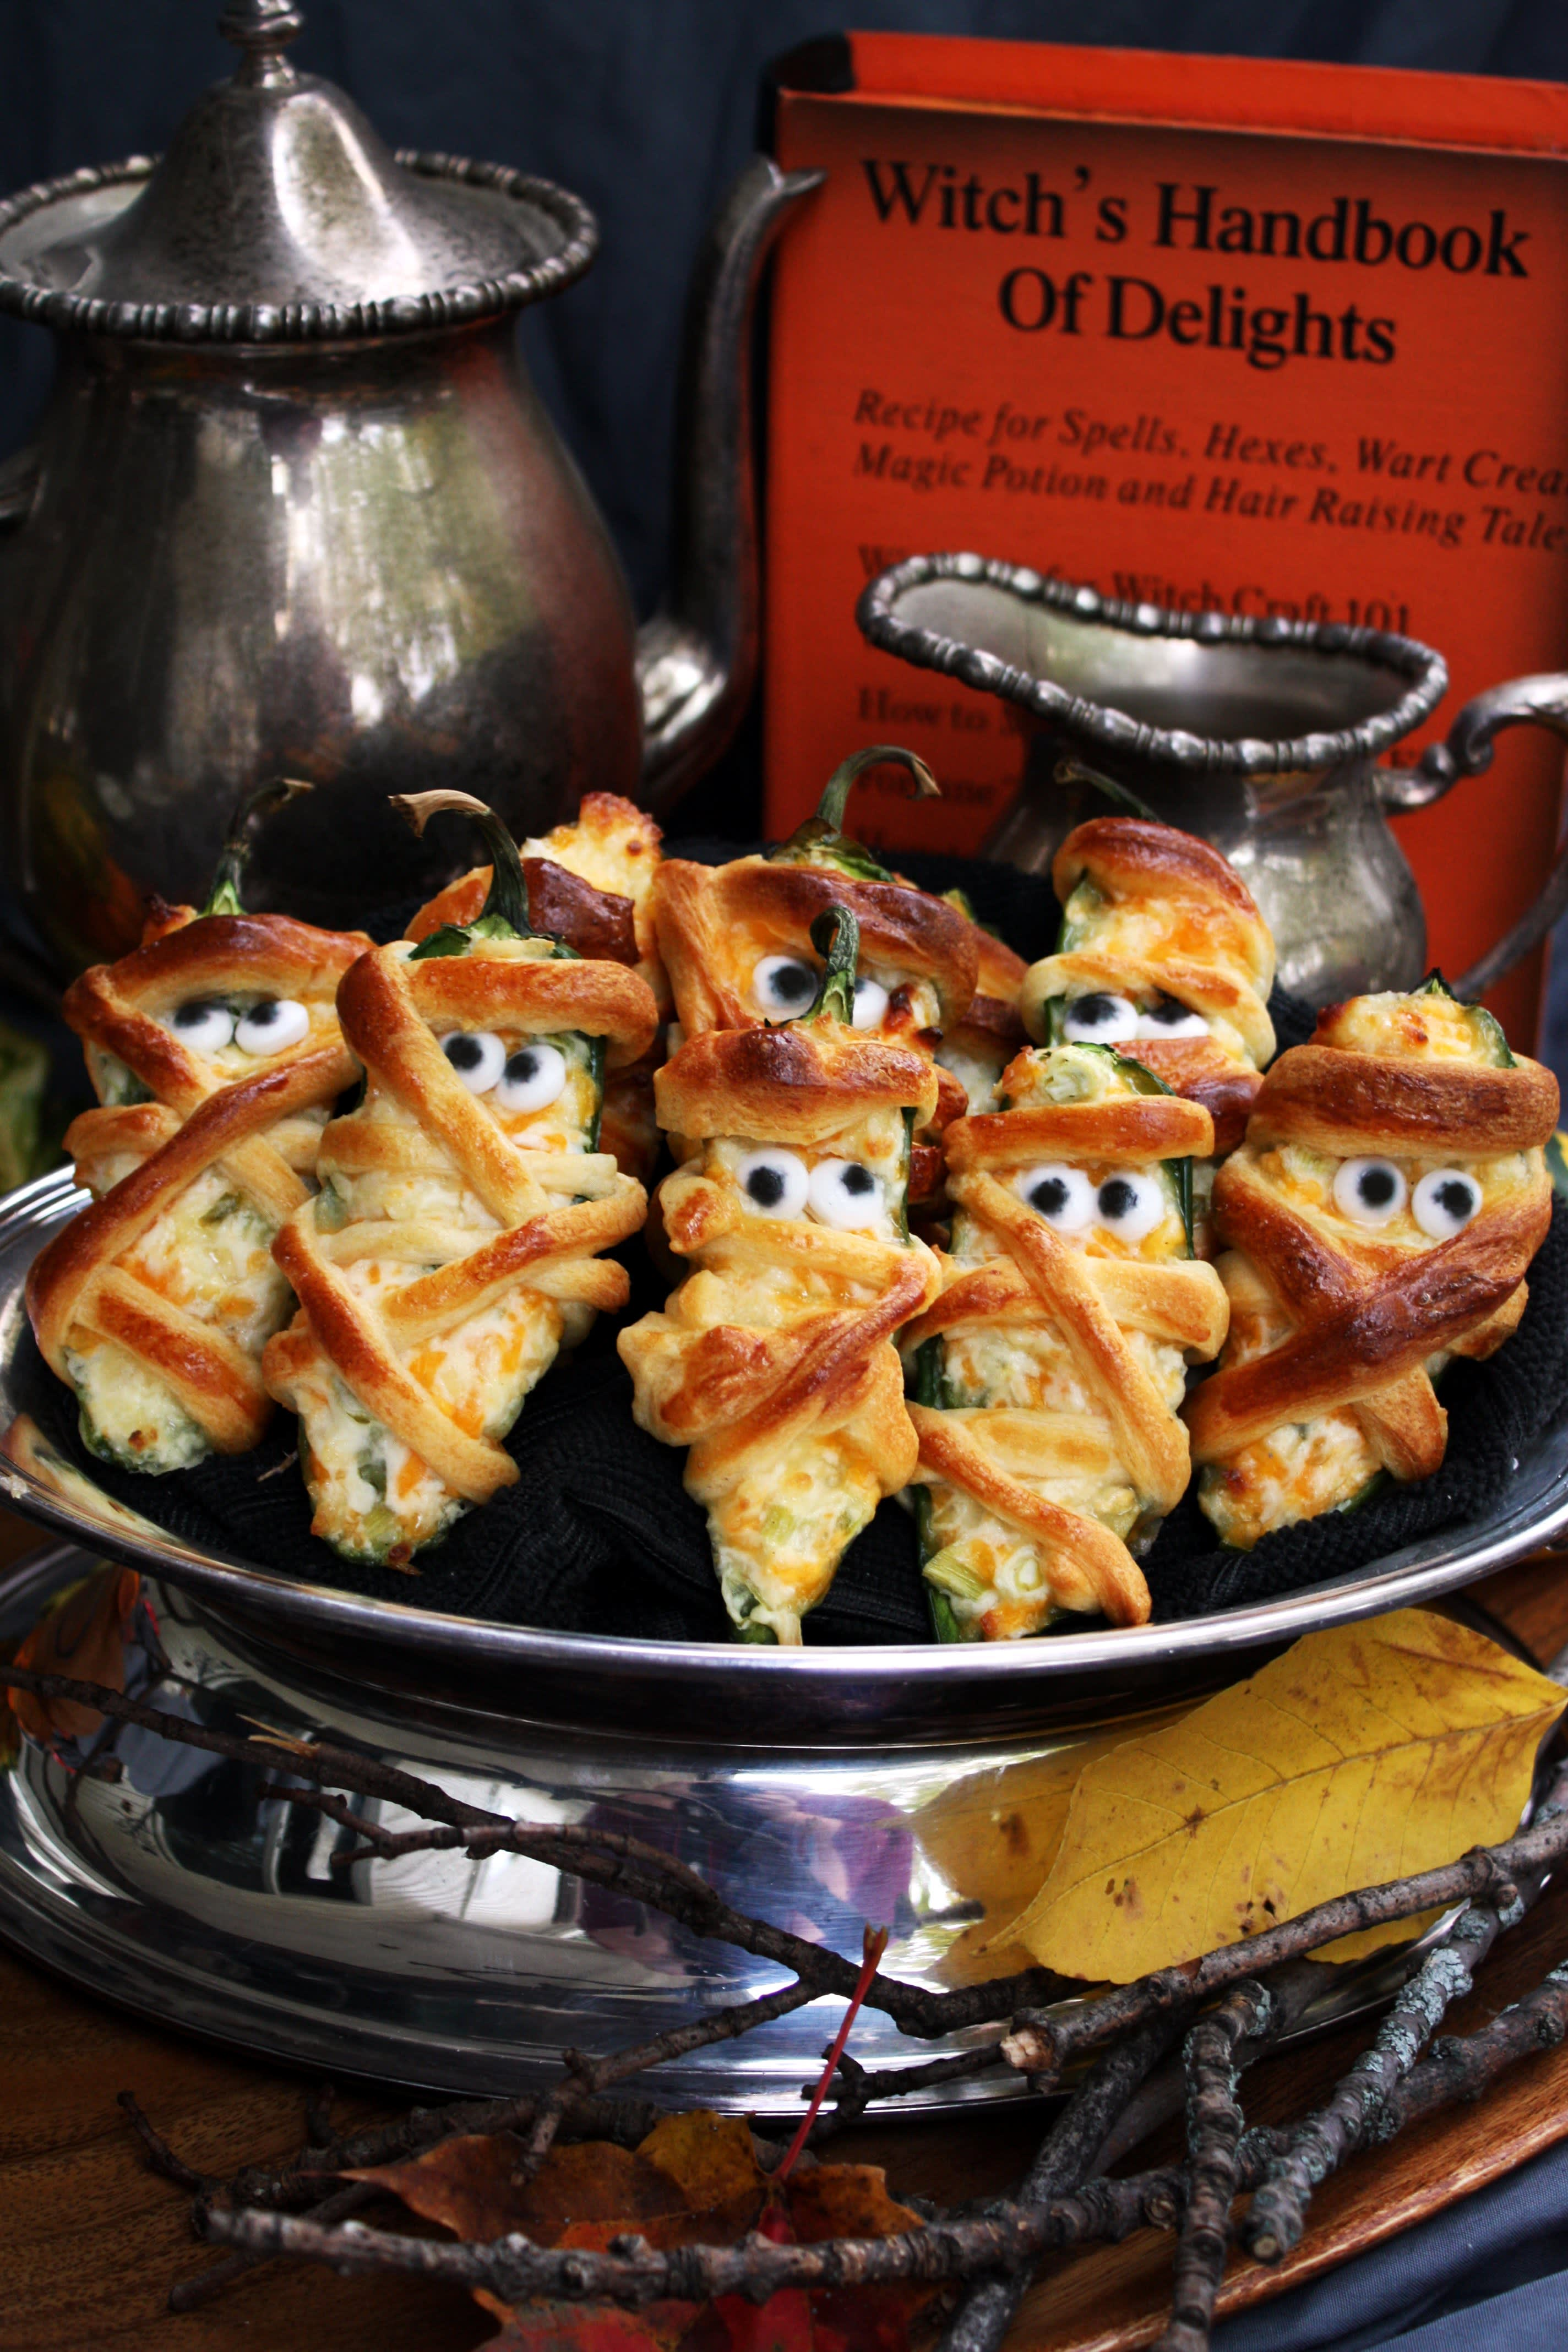 We Tried 7 Popular Halloween Recipes from Pinterest (So You